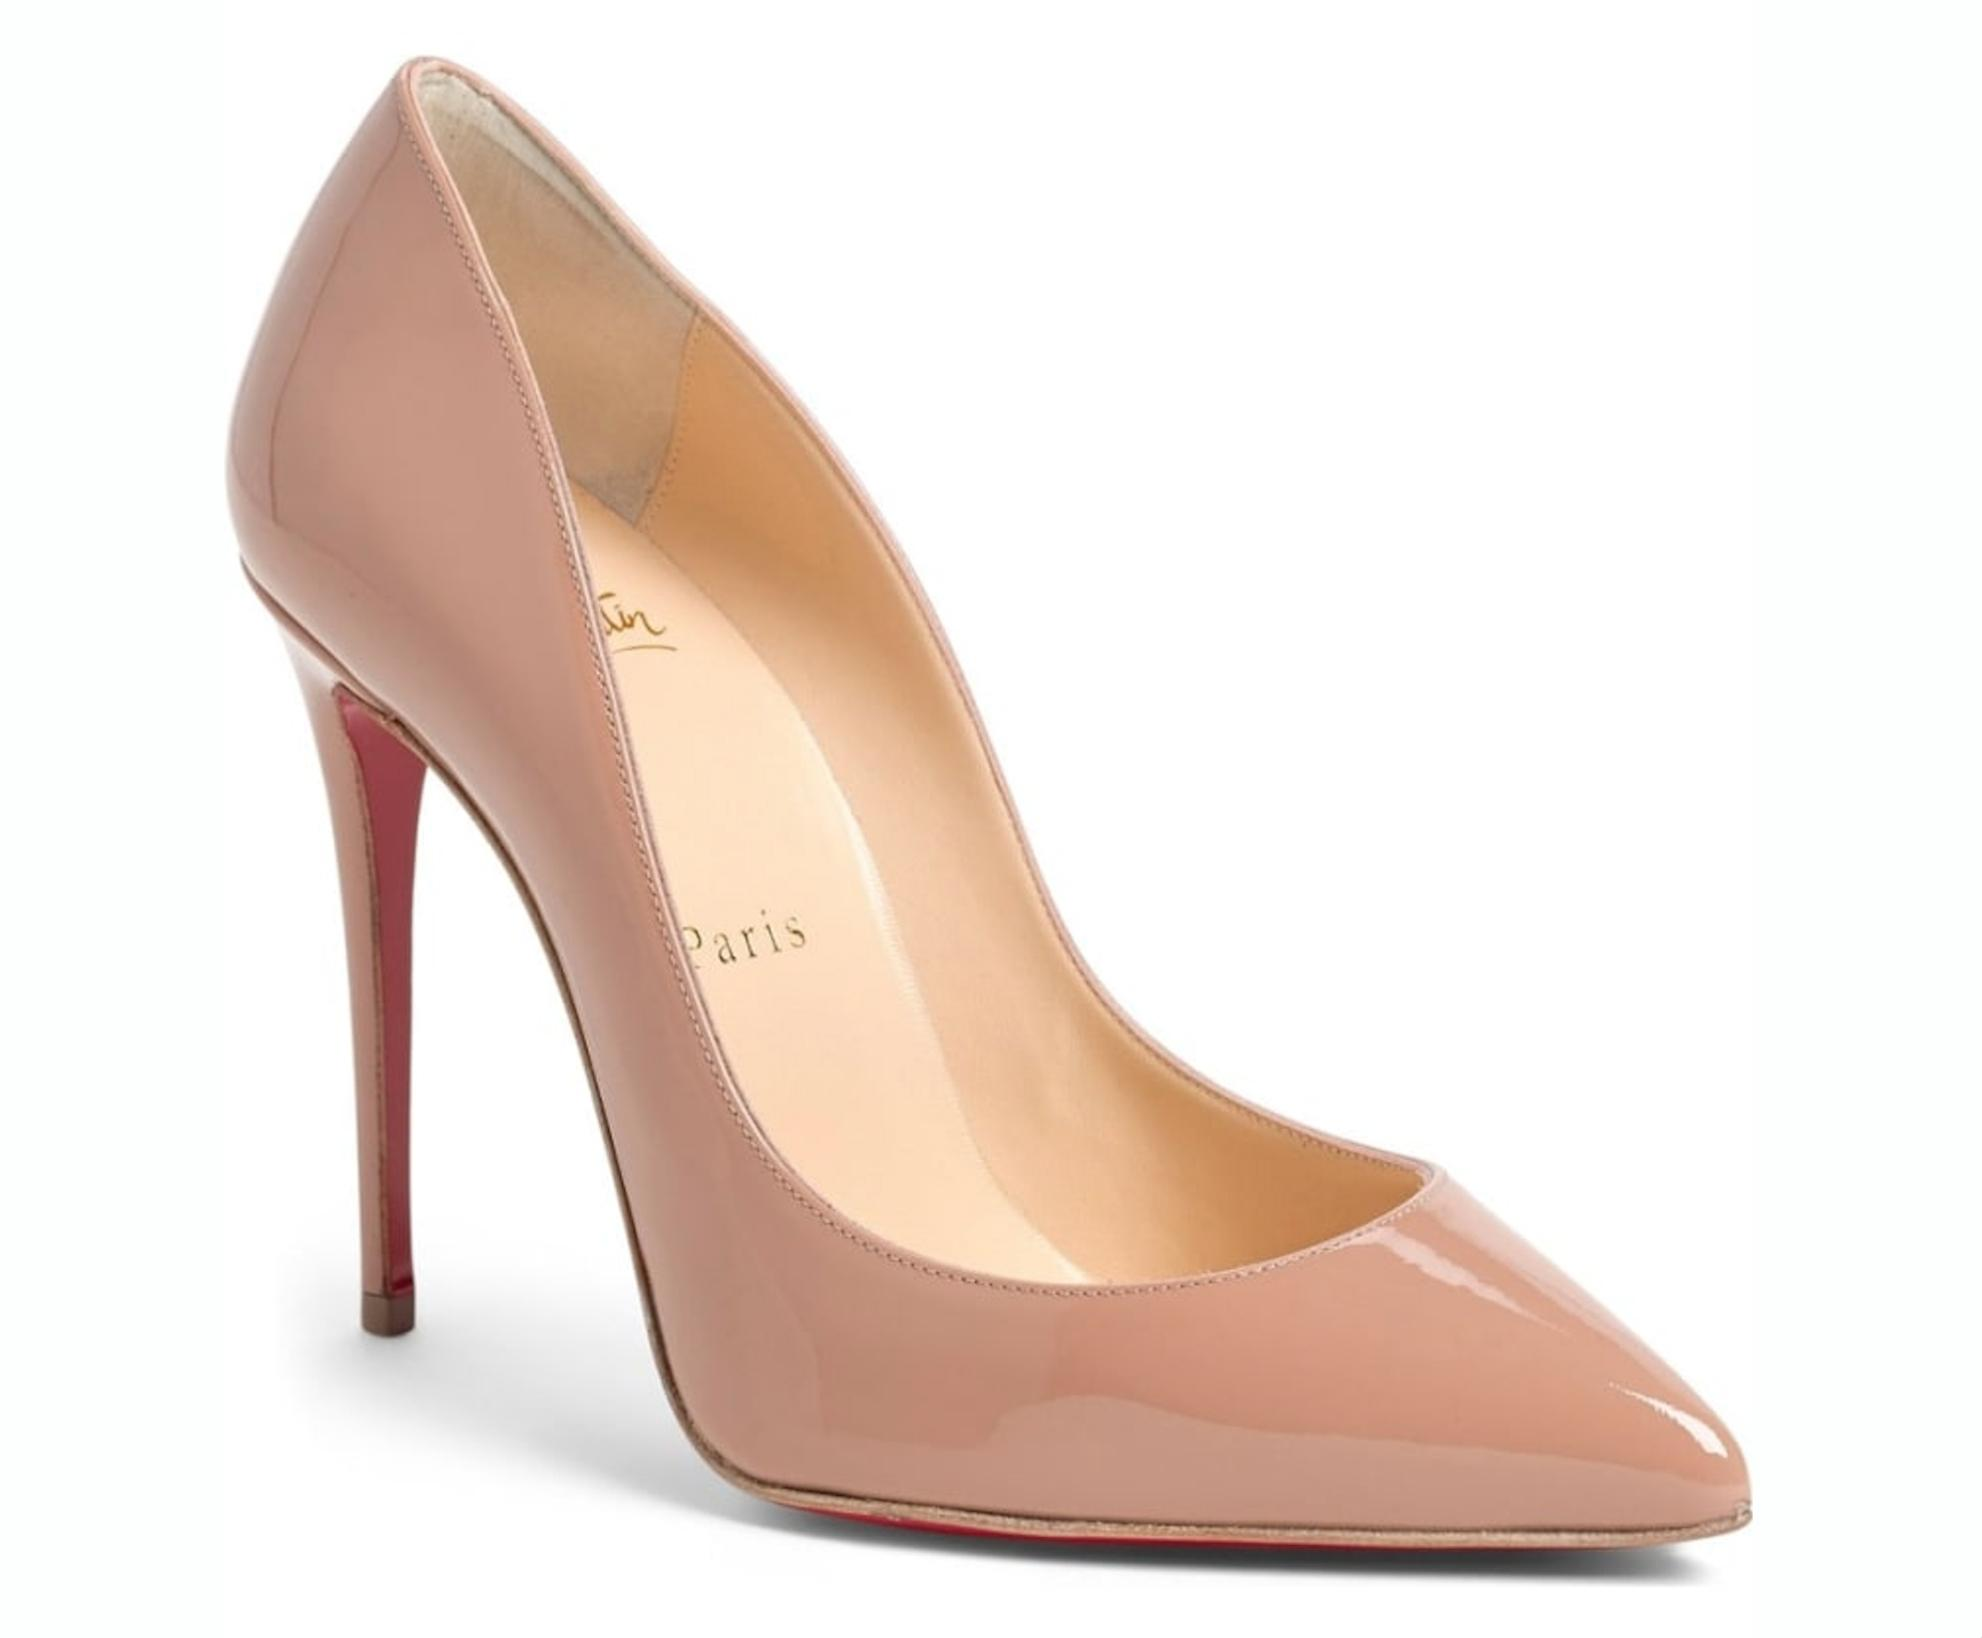 48cd630a95 Christian Christian Christian Louboutin Nude Pigalle Follies Patent 100mm  Red Sole Pumps Size EU 38 (Approx. US 8) Regular (M, B) 6f73e4